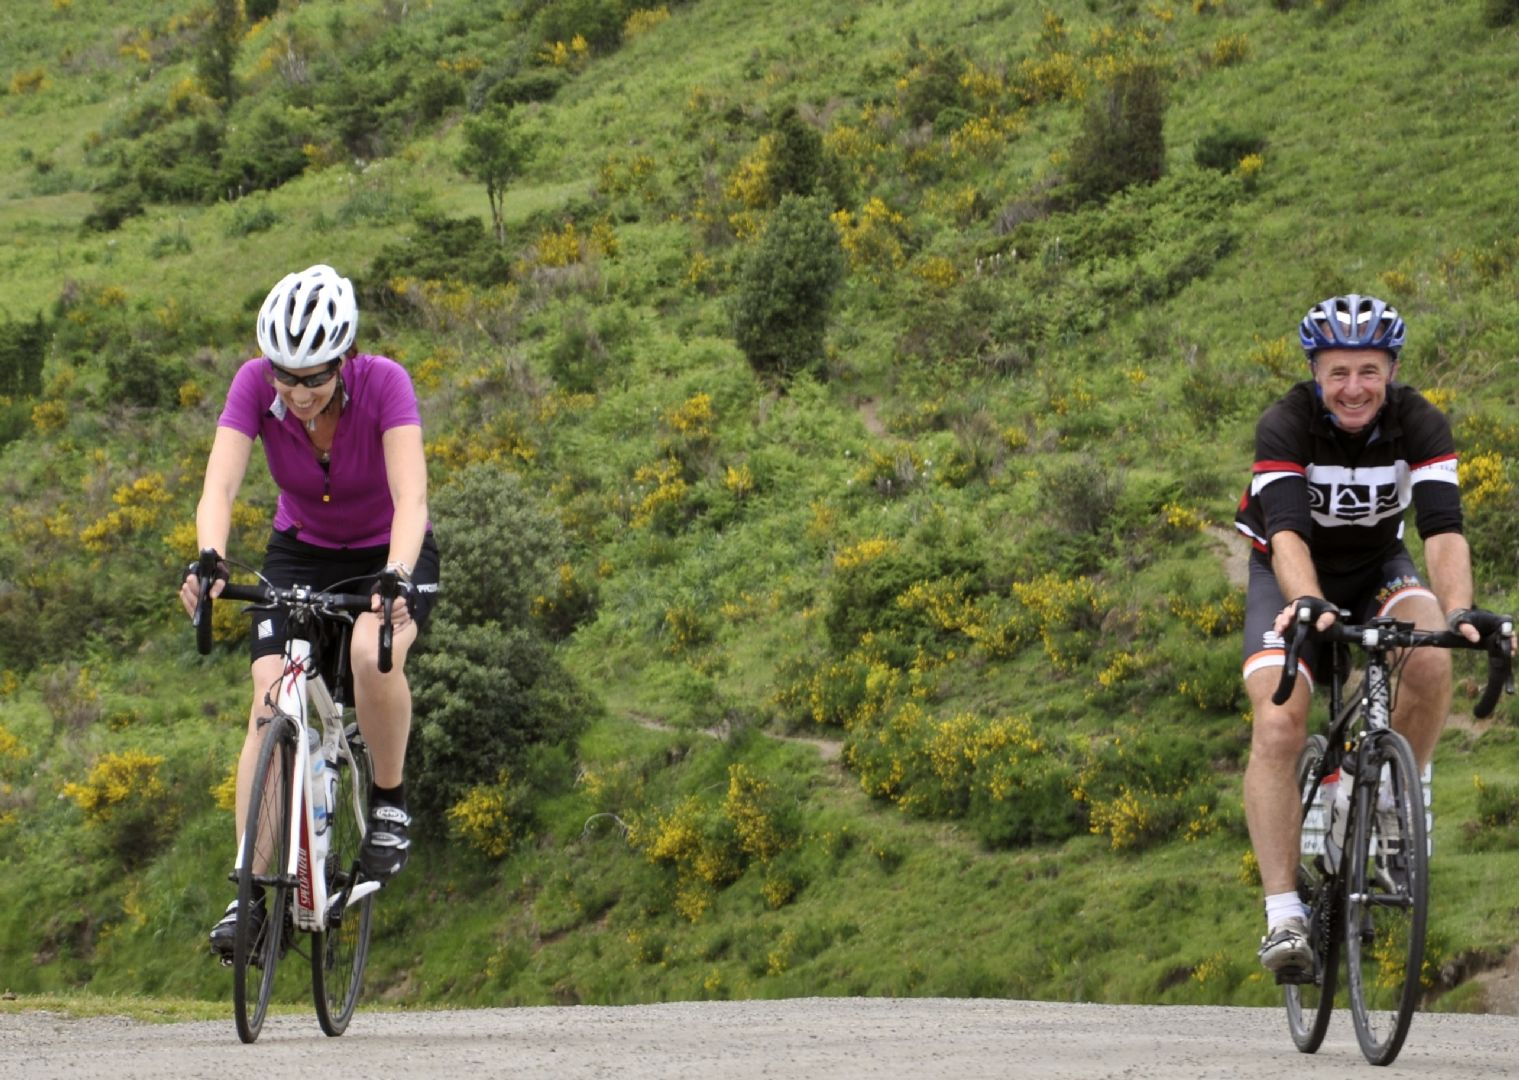 francepyrenees4.jpg - France - Trans Pyrenees Challenge - Guided Road Cycling Holiday - Road Cycling